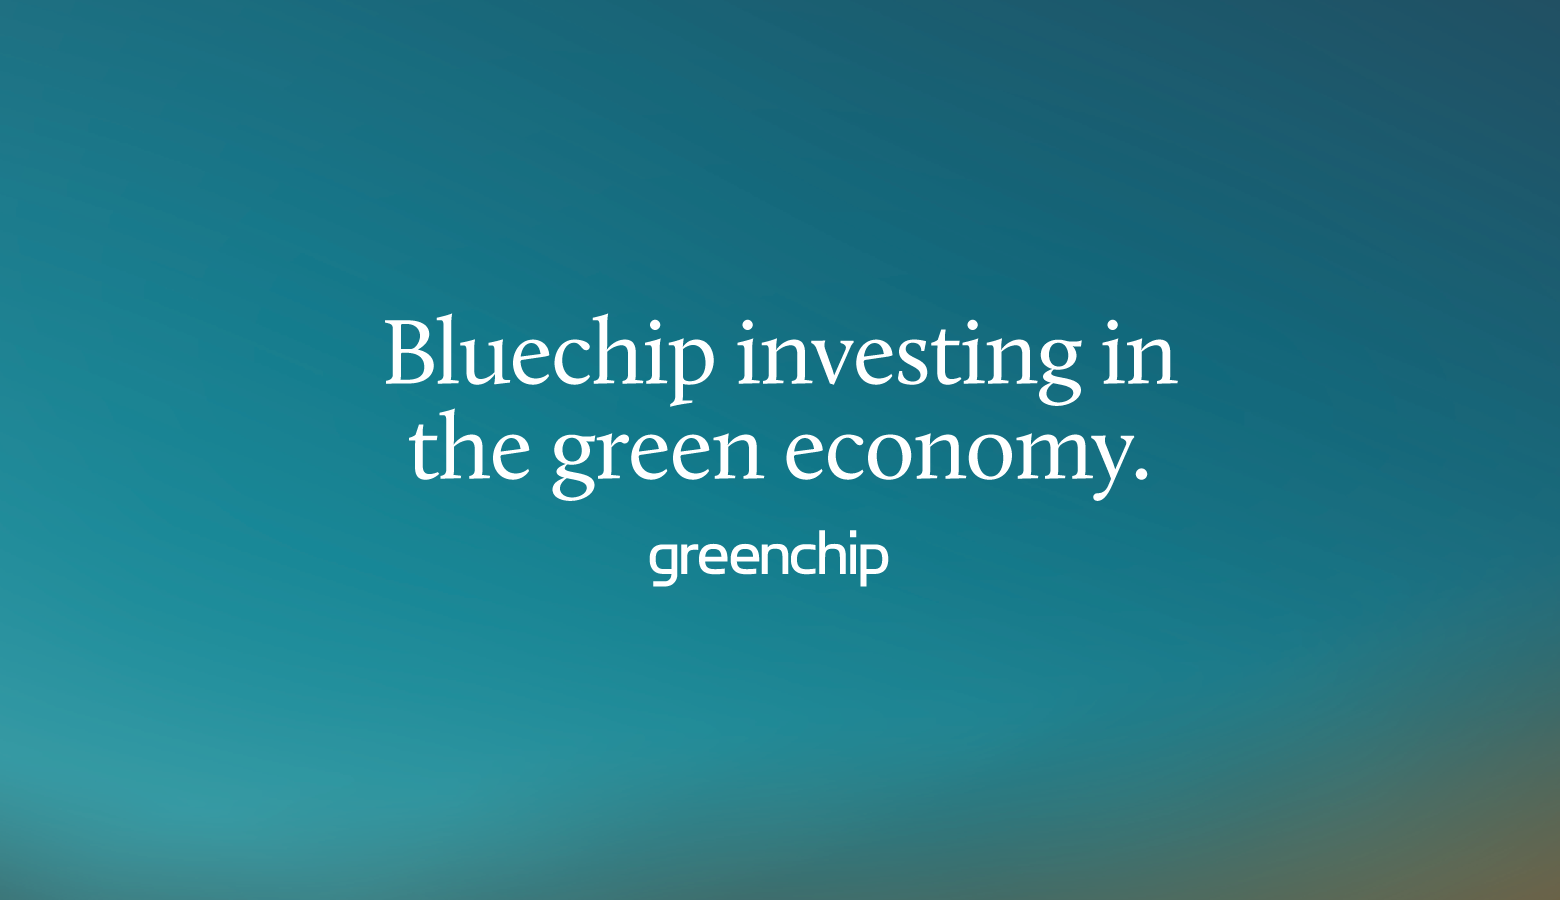 Greenchip Financial